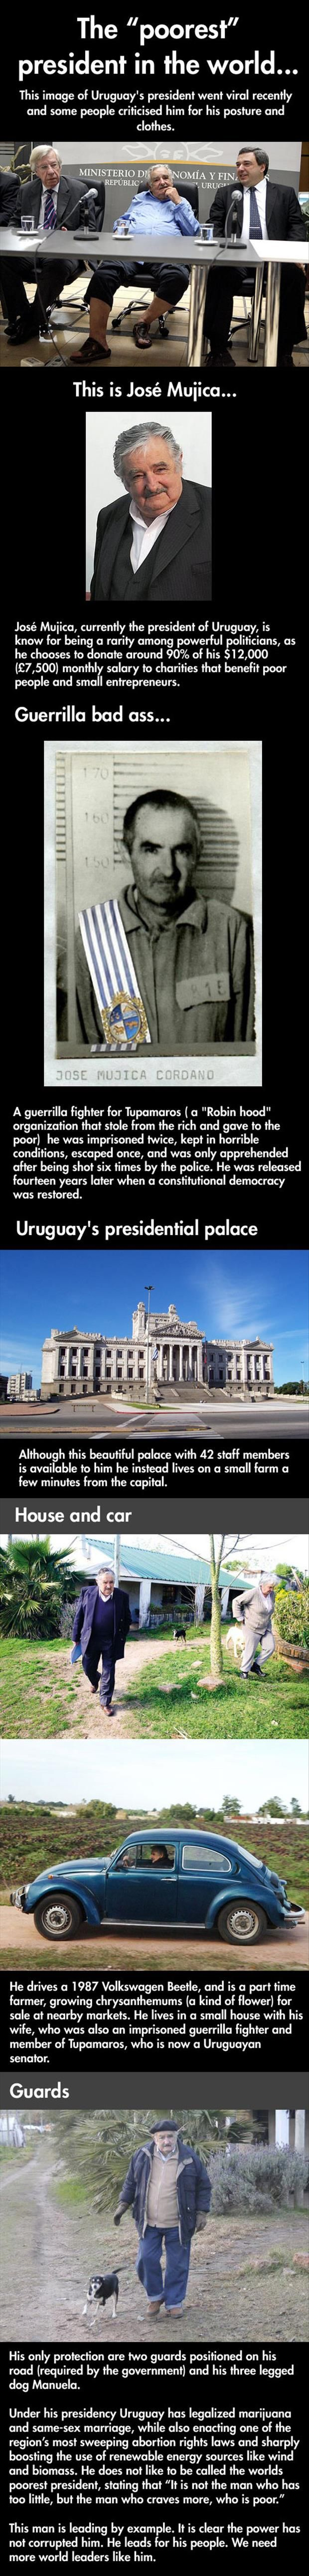 The President Of Uruguay Has My Vote! – 8 Pics